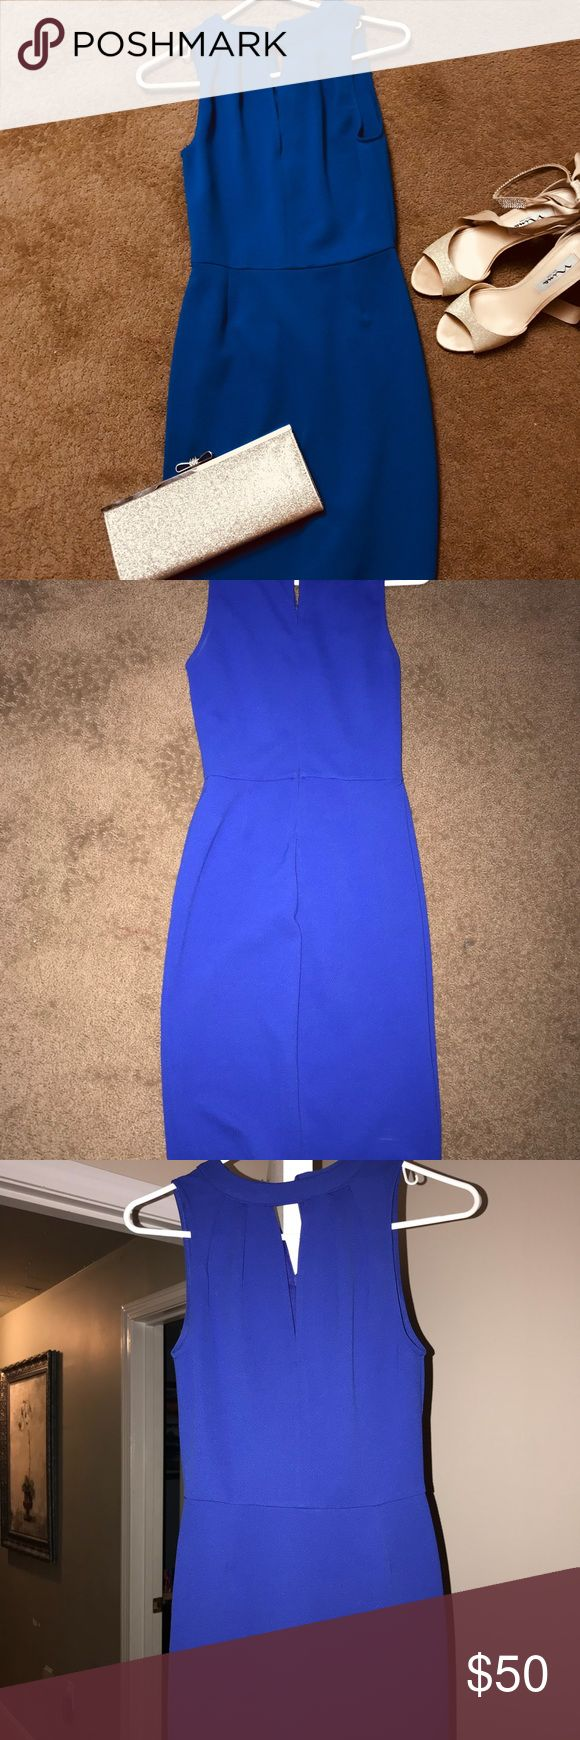 Cocktail dress Vivíd royal blue cocktail midi dress size small. Perfect for a party or a night out ! Very soft material. Bought it at Nordstrom. New with tags Dresses Midi